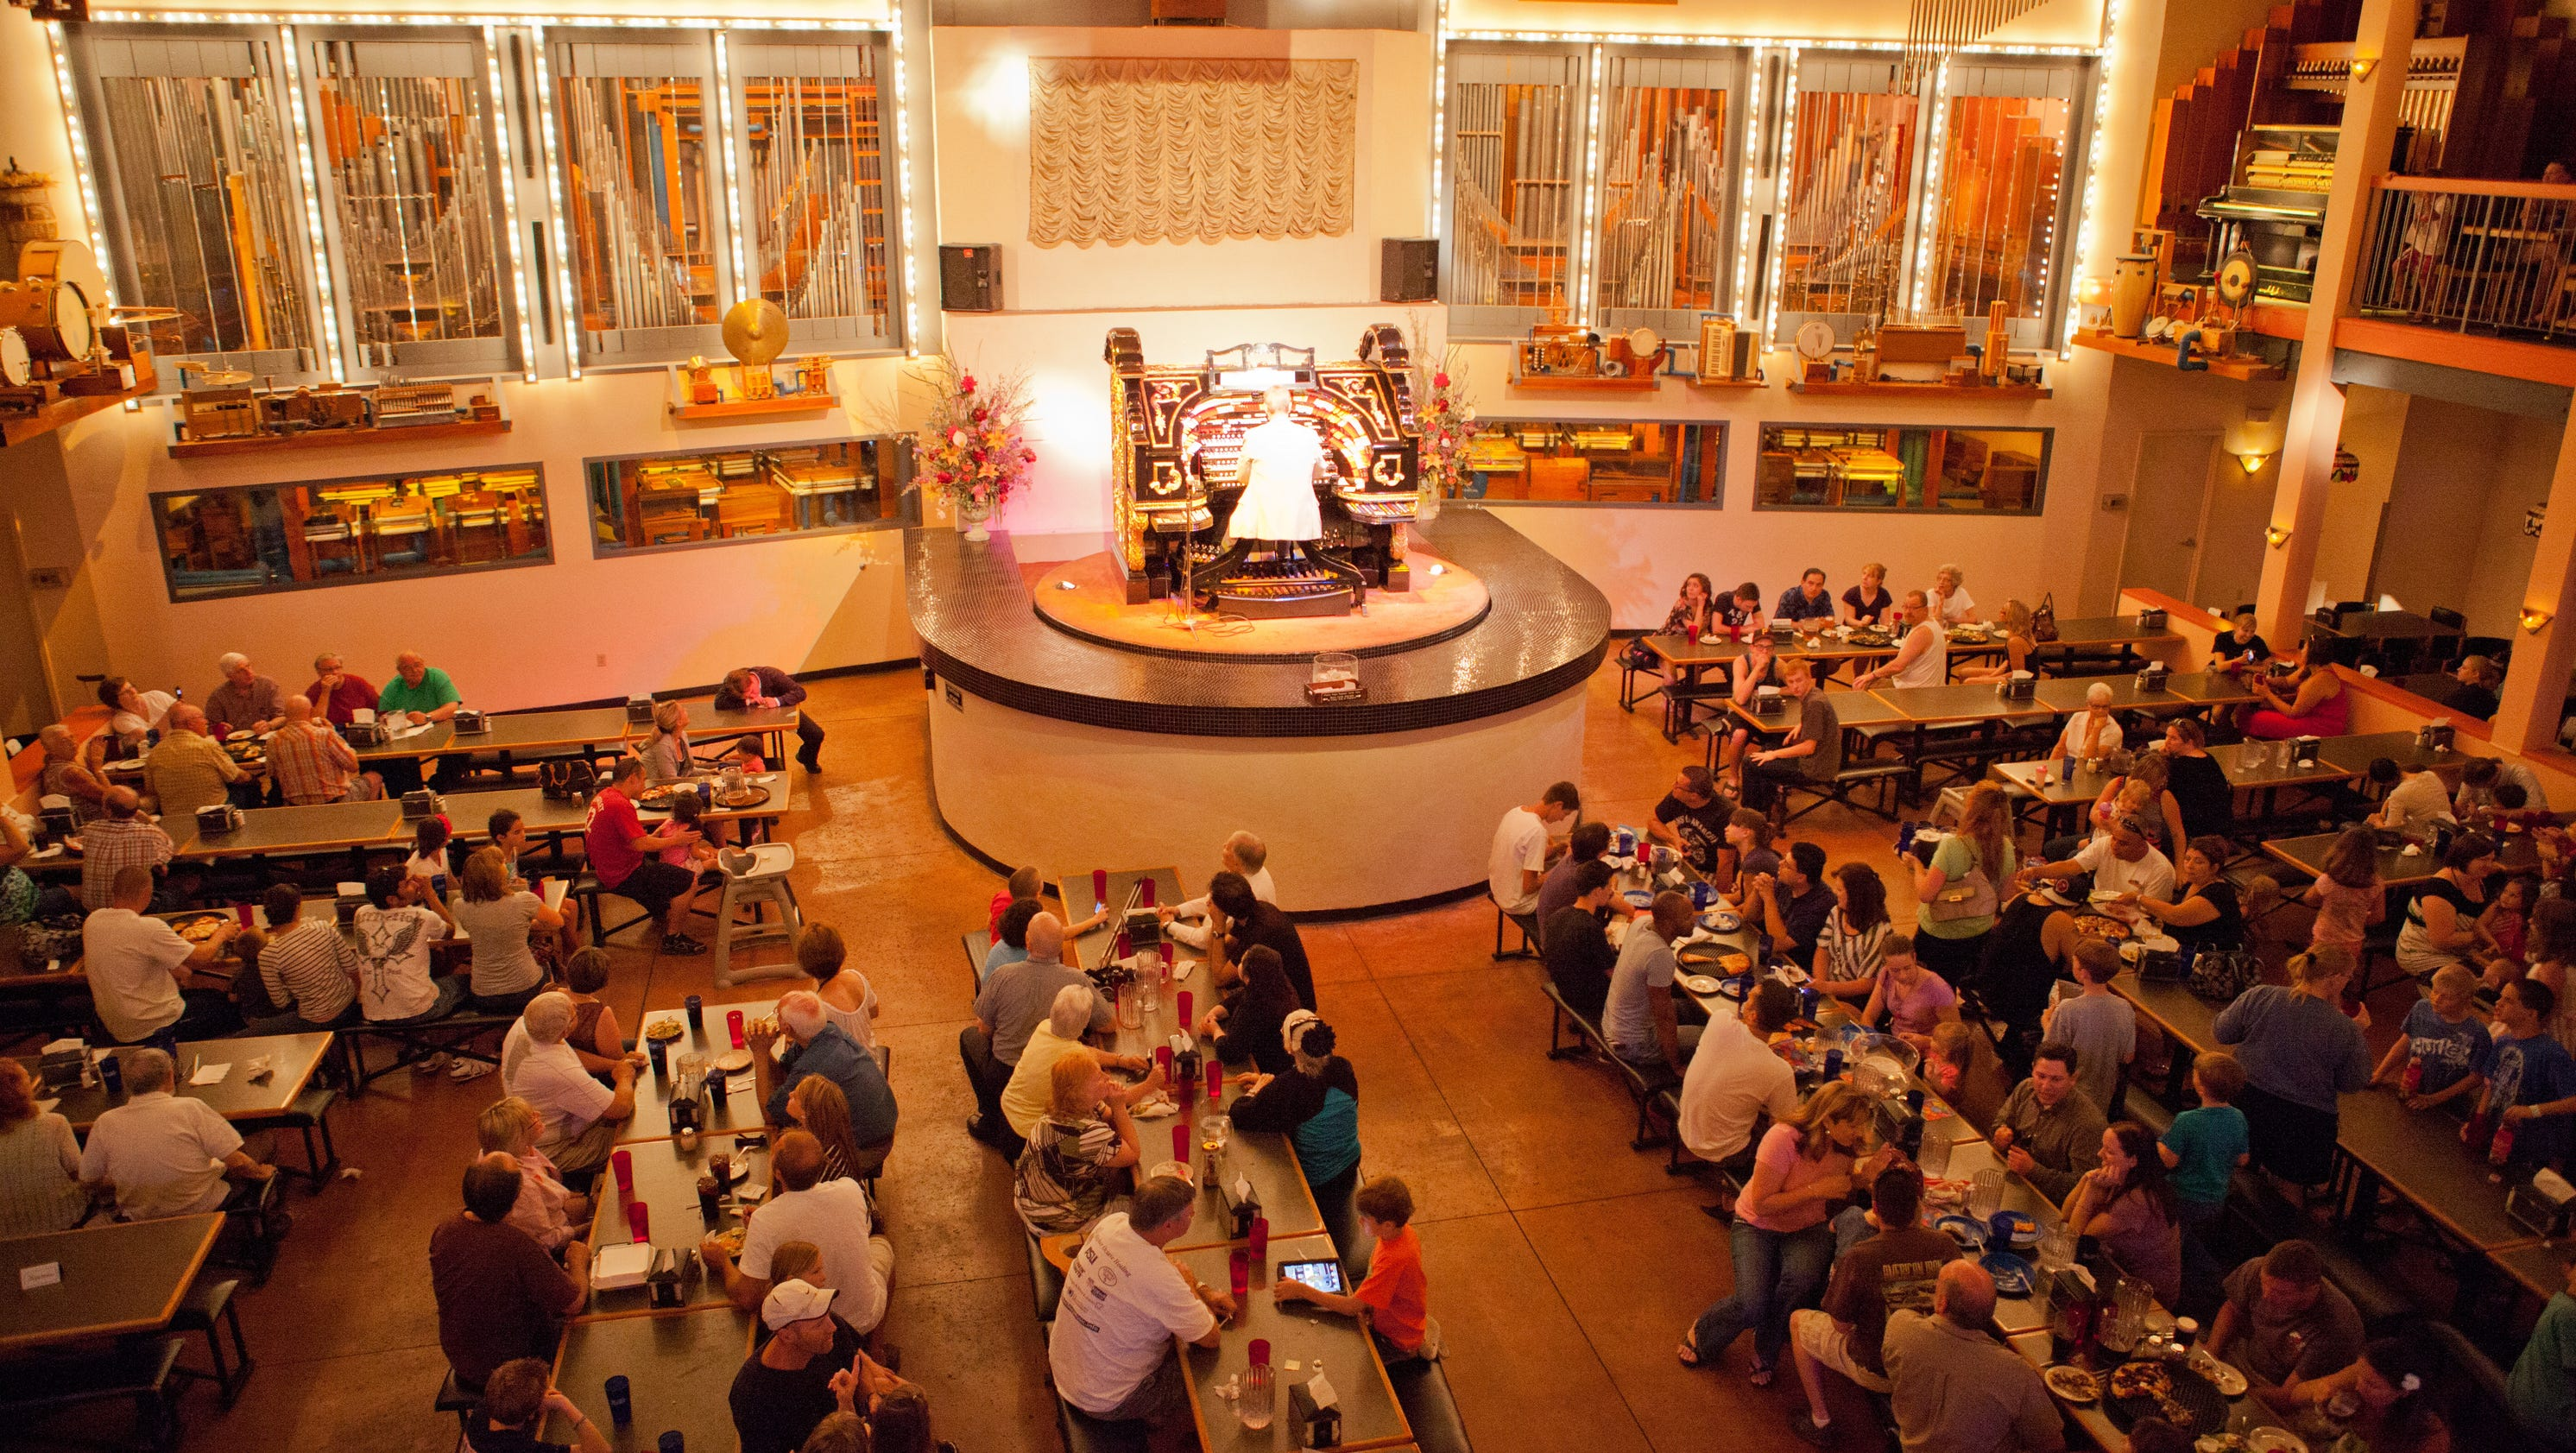 14 Fun Facts About Organ Stop Pizza In Mesa